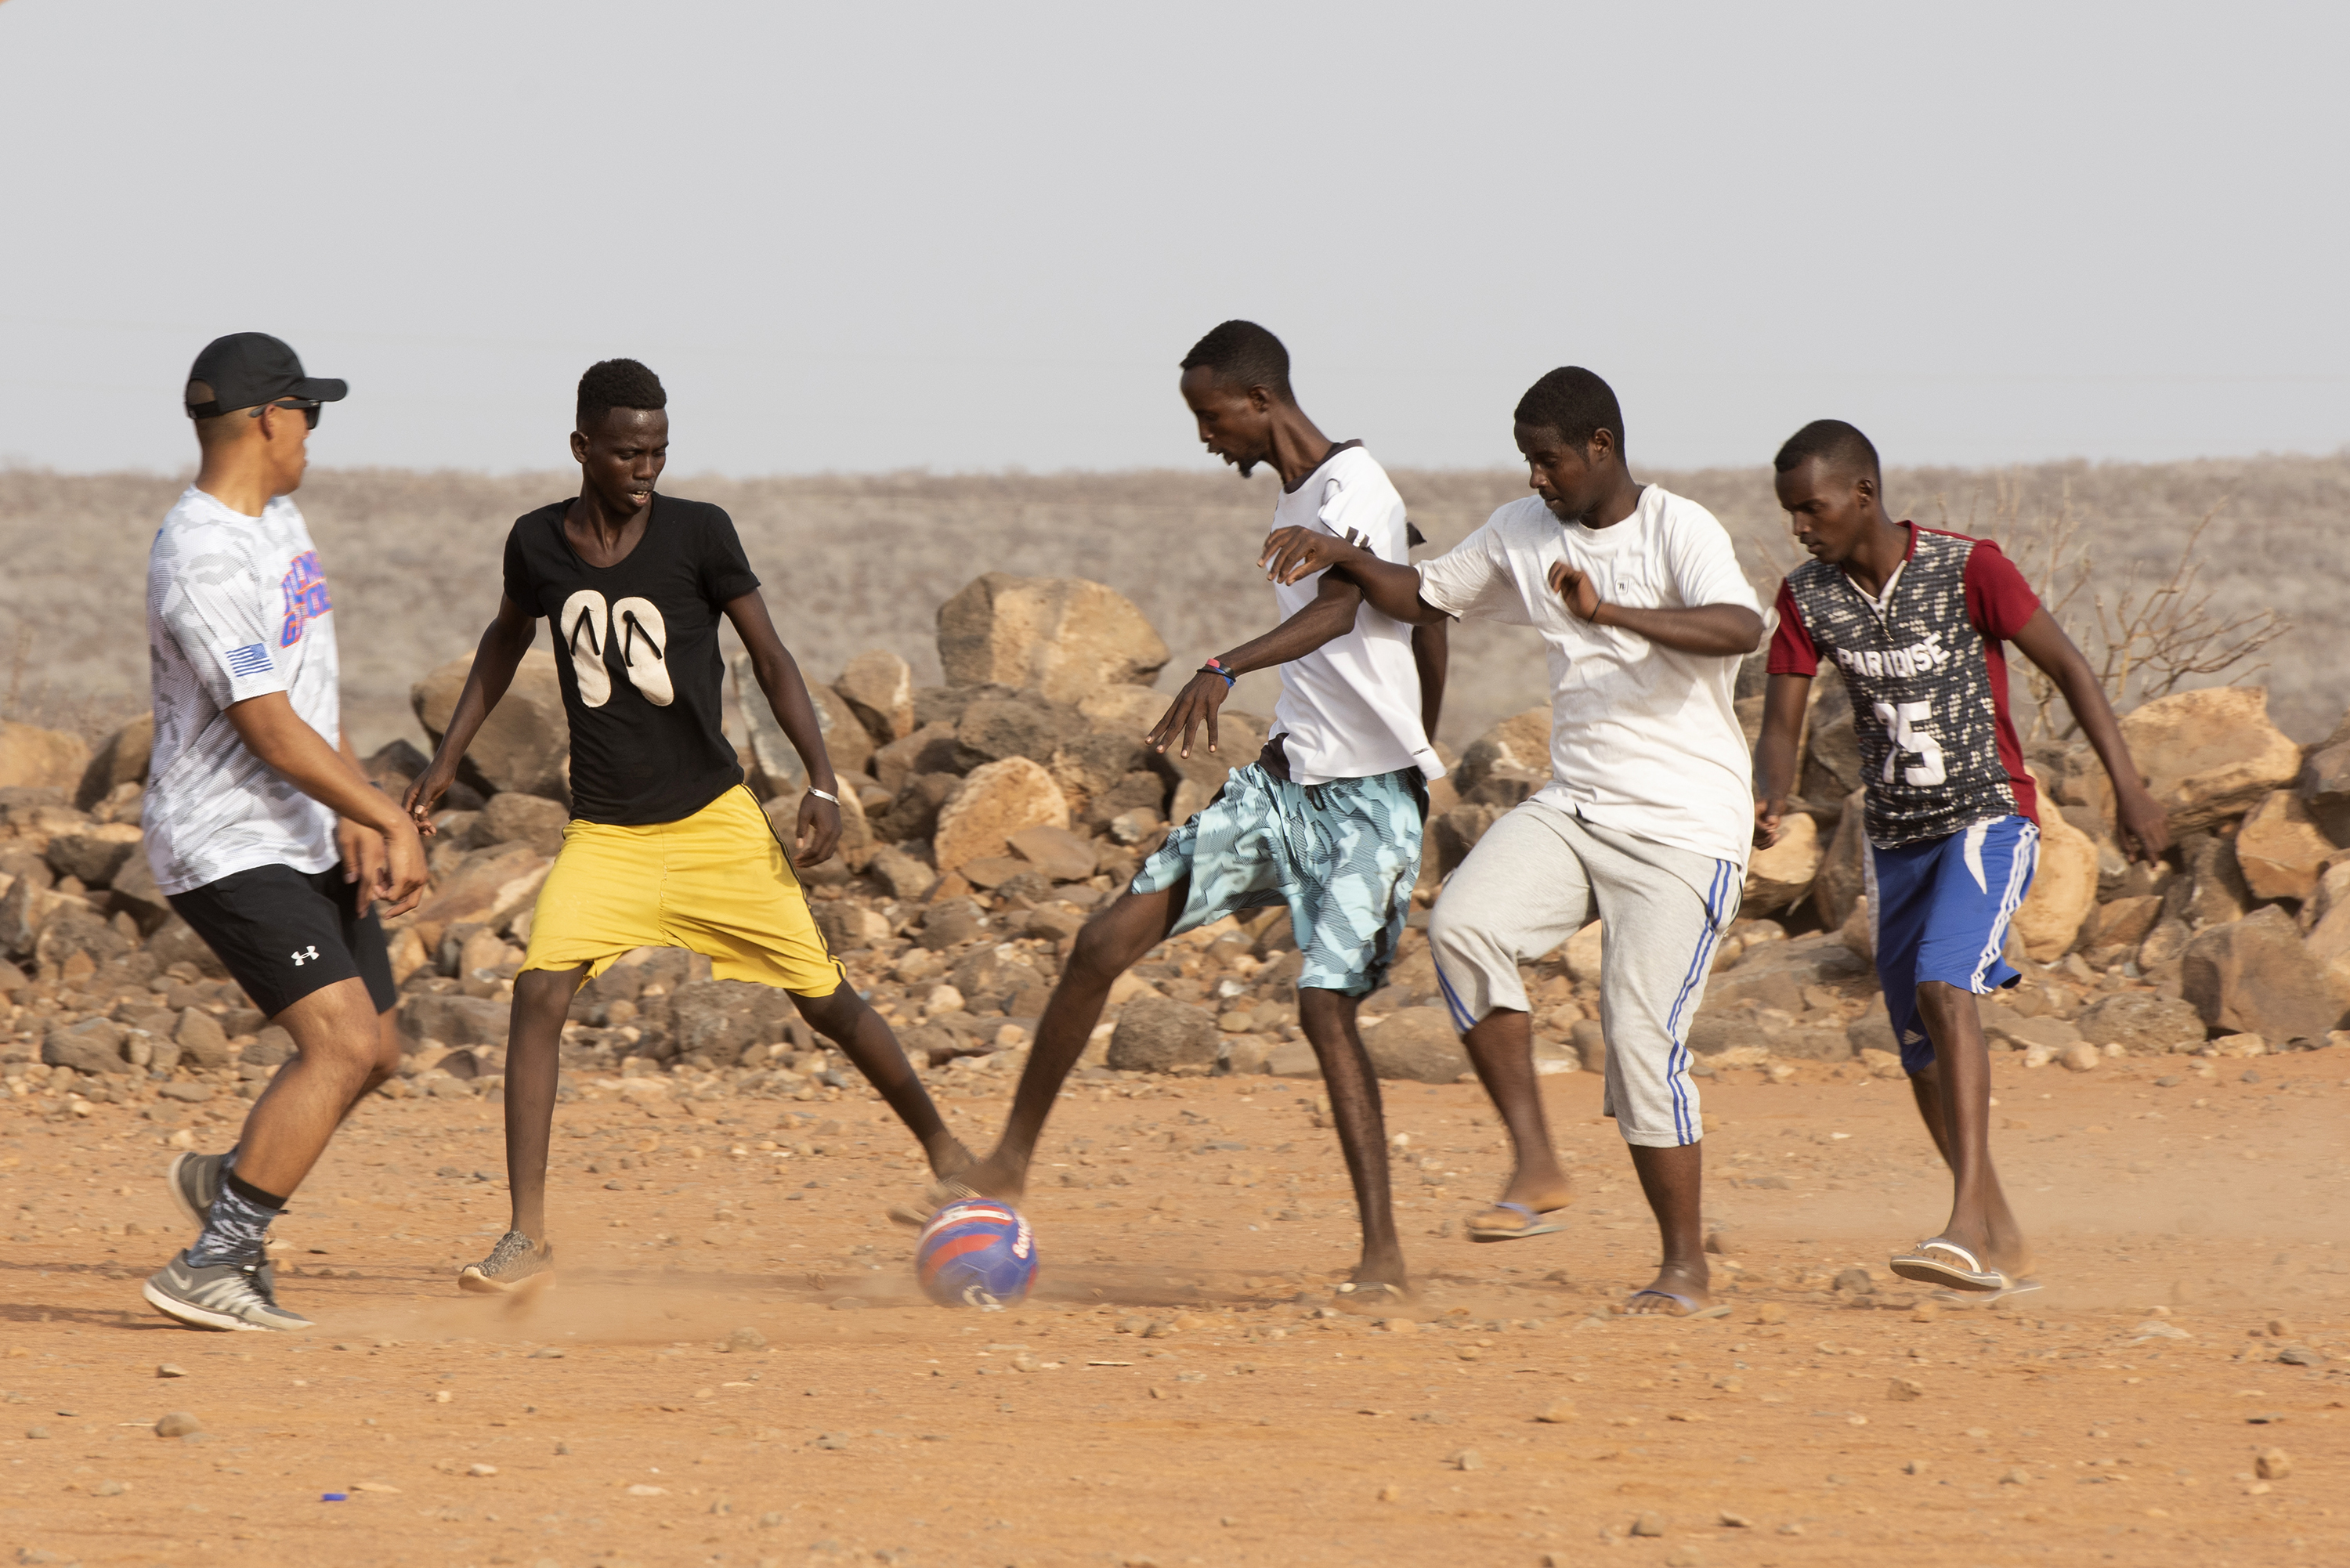 U.S. Air Force 1st Lt. Darren Domingo, left, officer in charge, Combat Camera, assigned to Combined Joint Task Force - Horn of Africa, plays soccer with children from the local village outside of Chebelley Village, Djibouti, Aug. 3, 2018. Domingo was one of approximately 30 service members participating in an outreach event organized by the 404th Civil Affairs Battalion. (U.S. Air National Guard photo by Master Sgt. Sarah Mattison)